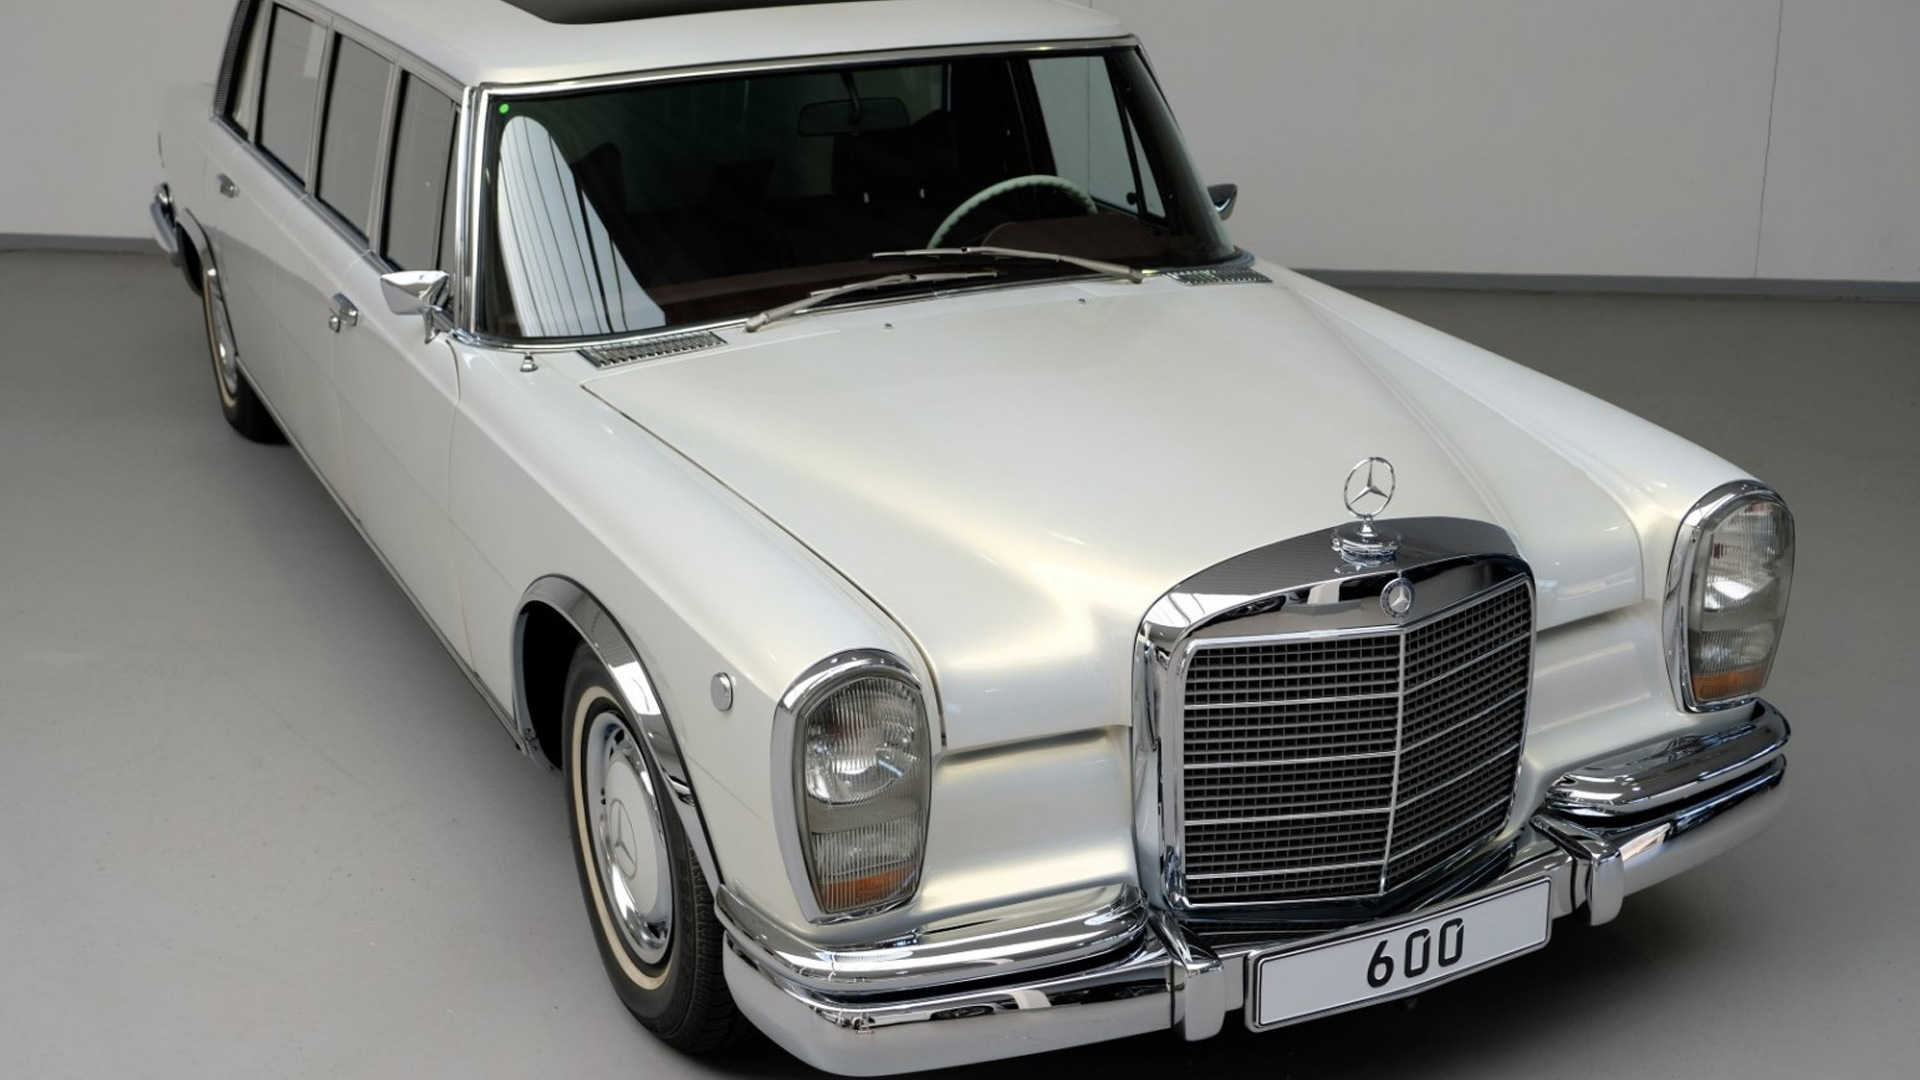 1975 Mercedes-Benz 600 Pullman Maybach restomod - Photo credit: Auto Leitner